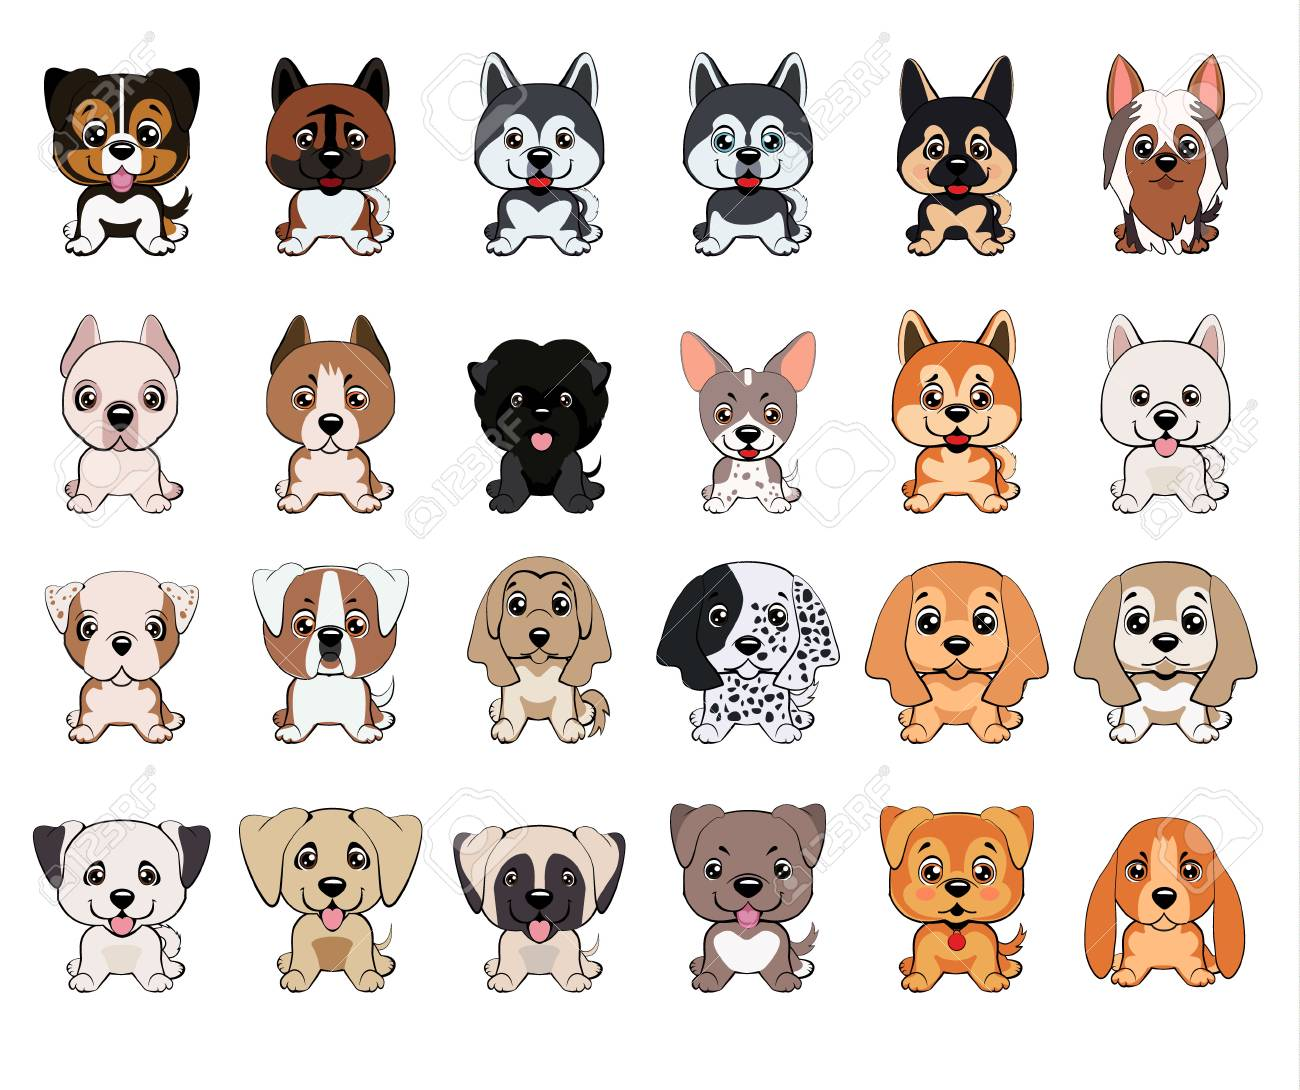 A Set Of Dogs Of Different Breeds Puppies Of Different Colors Royalty Free Cliparts Vectors And Stock Illustration Image 109752078